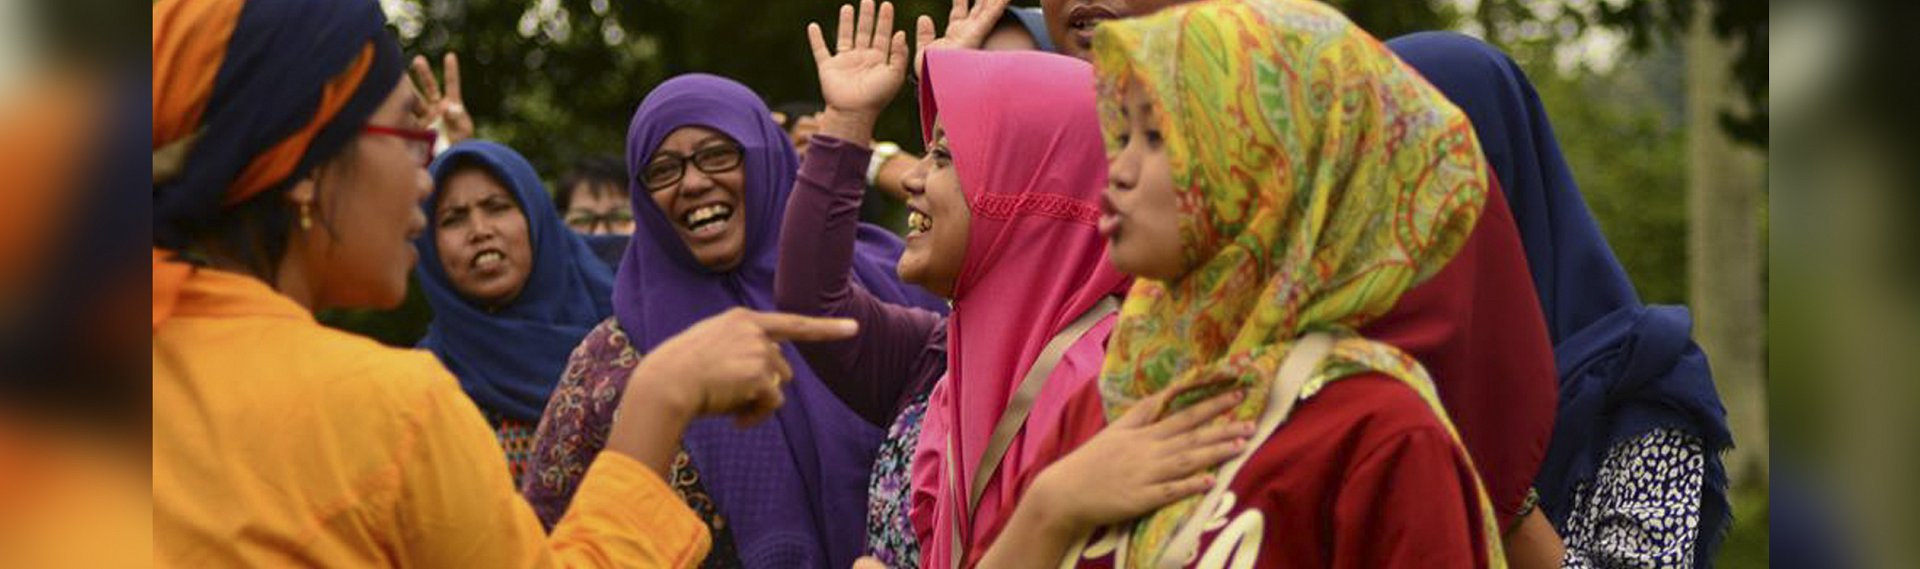 'Militant mothers' at frontline of conflict resolution in Indonesia